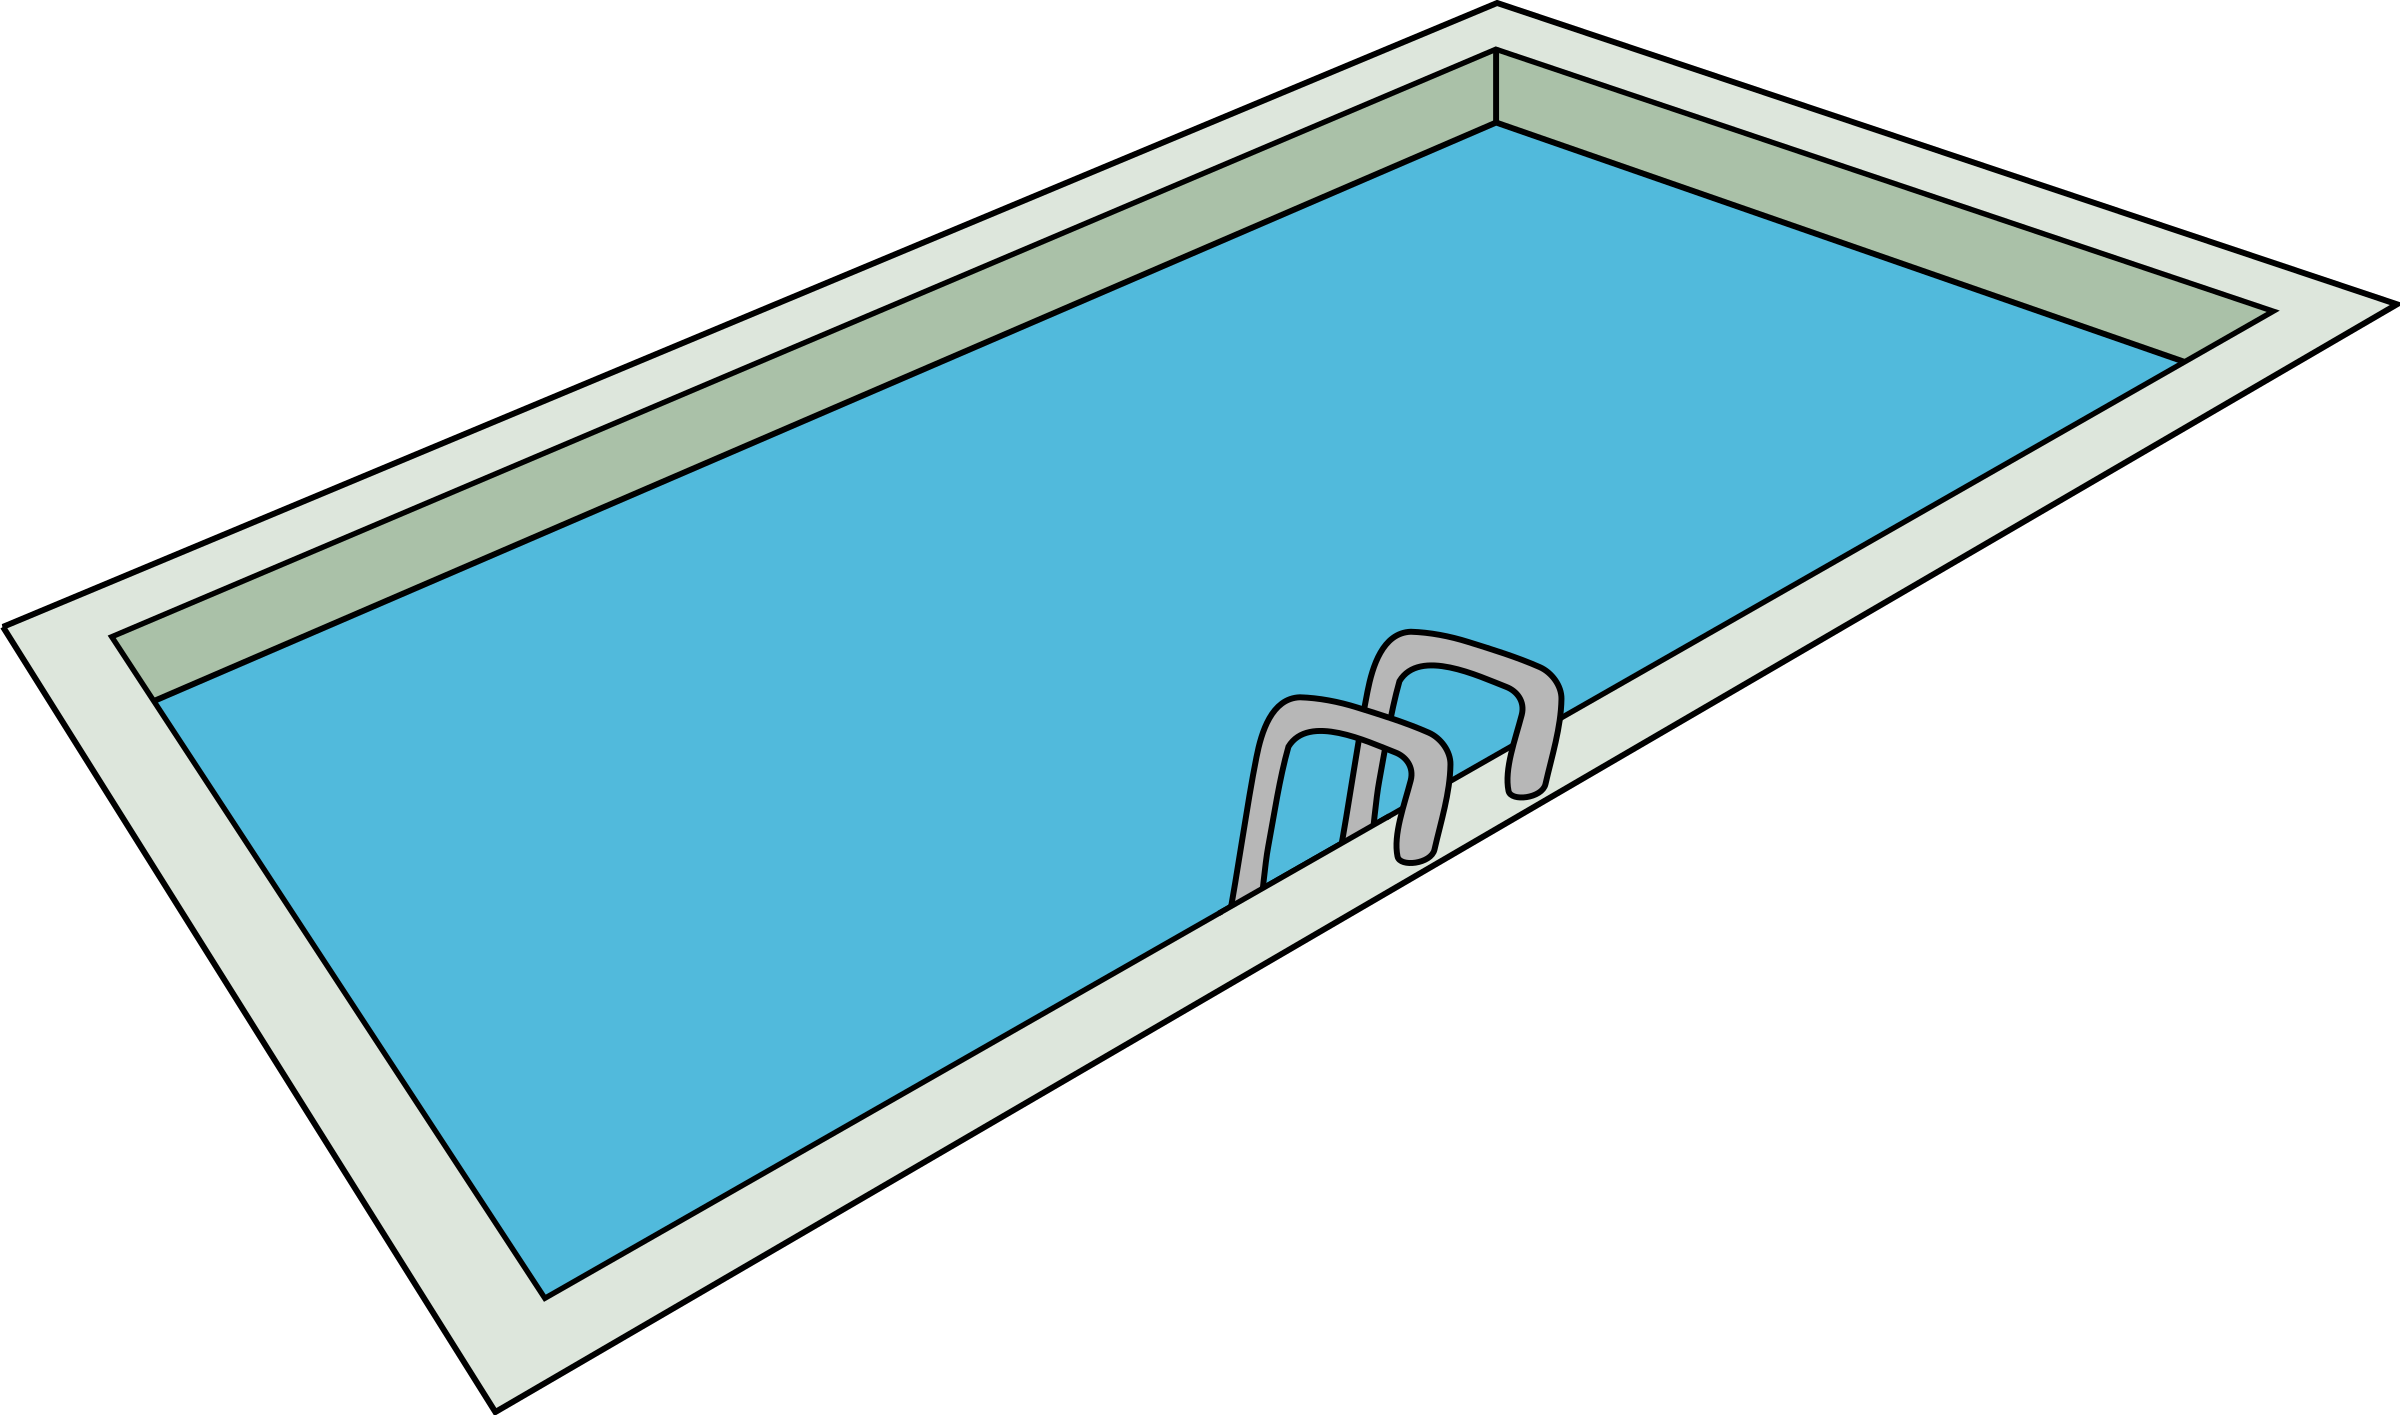 Swimming transparent pool. Clipart at getdrawings com